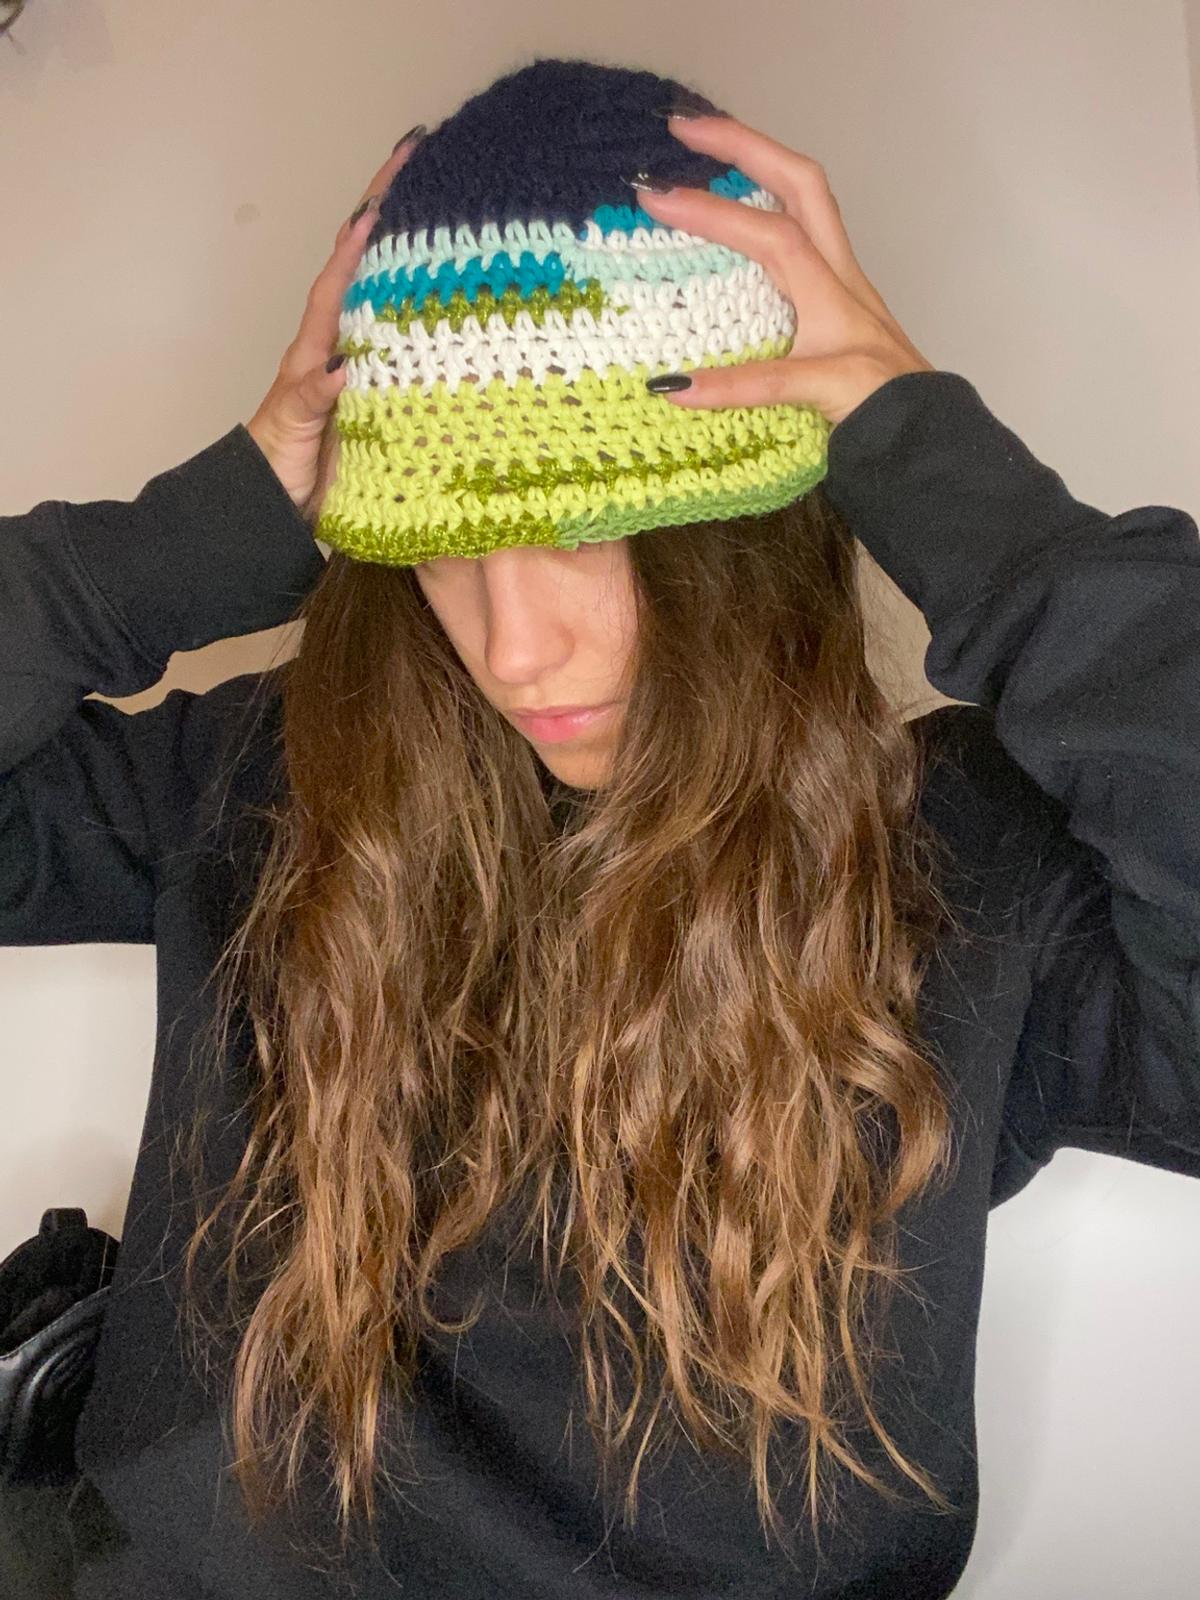 Crochet Bucket Hat In 20121 Milano For 28 00 For Sale Shpock